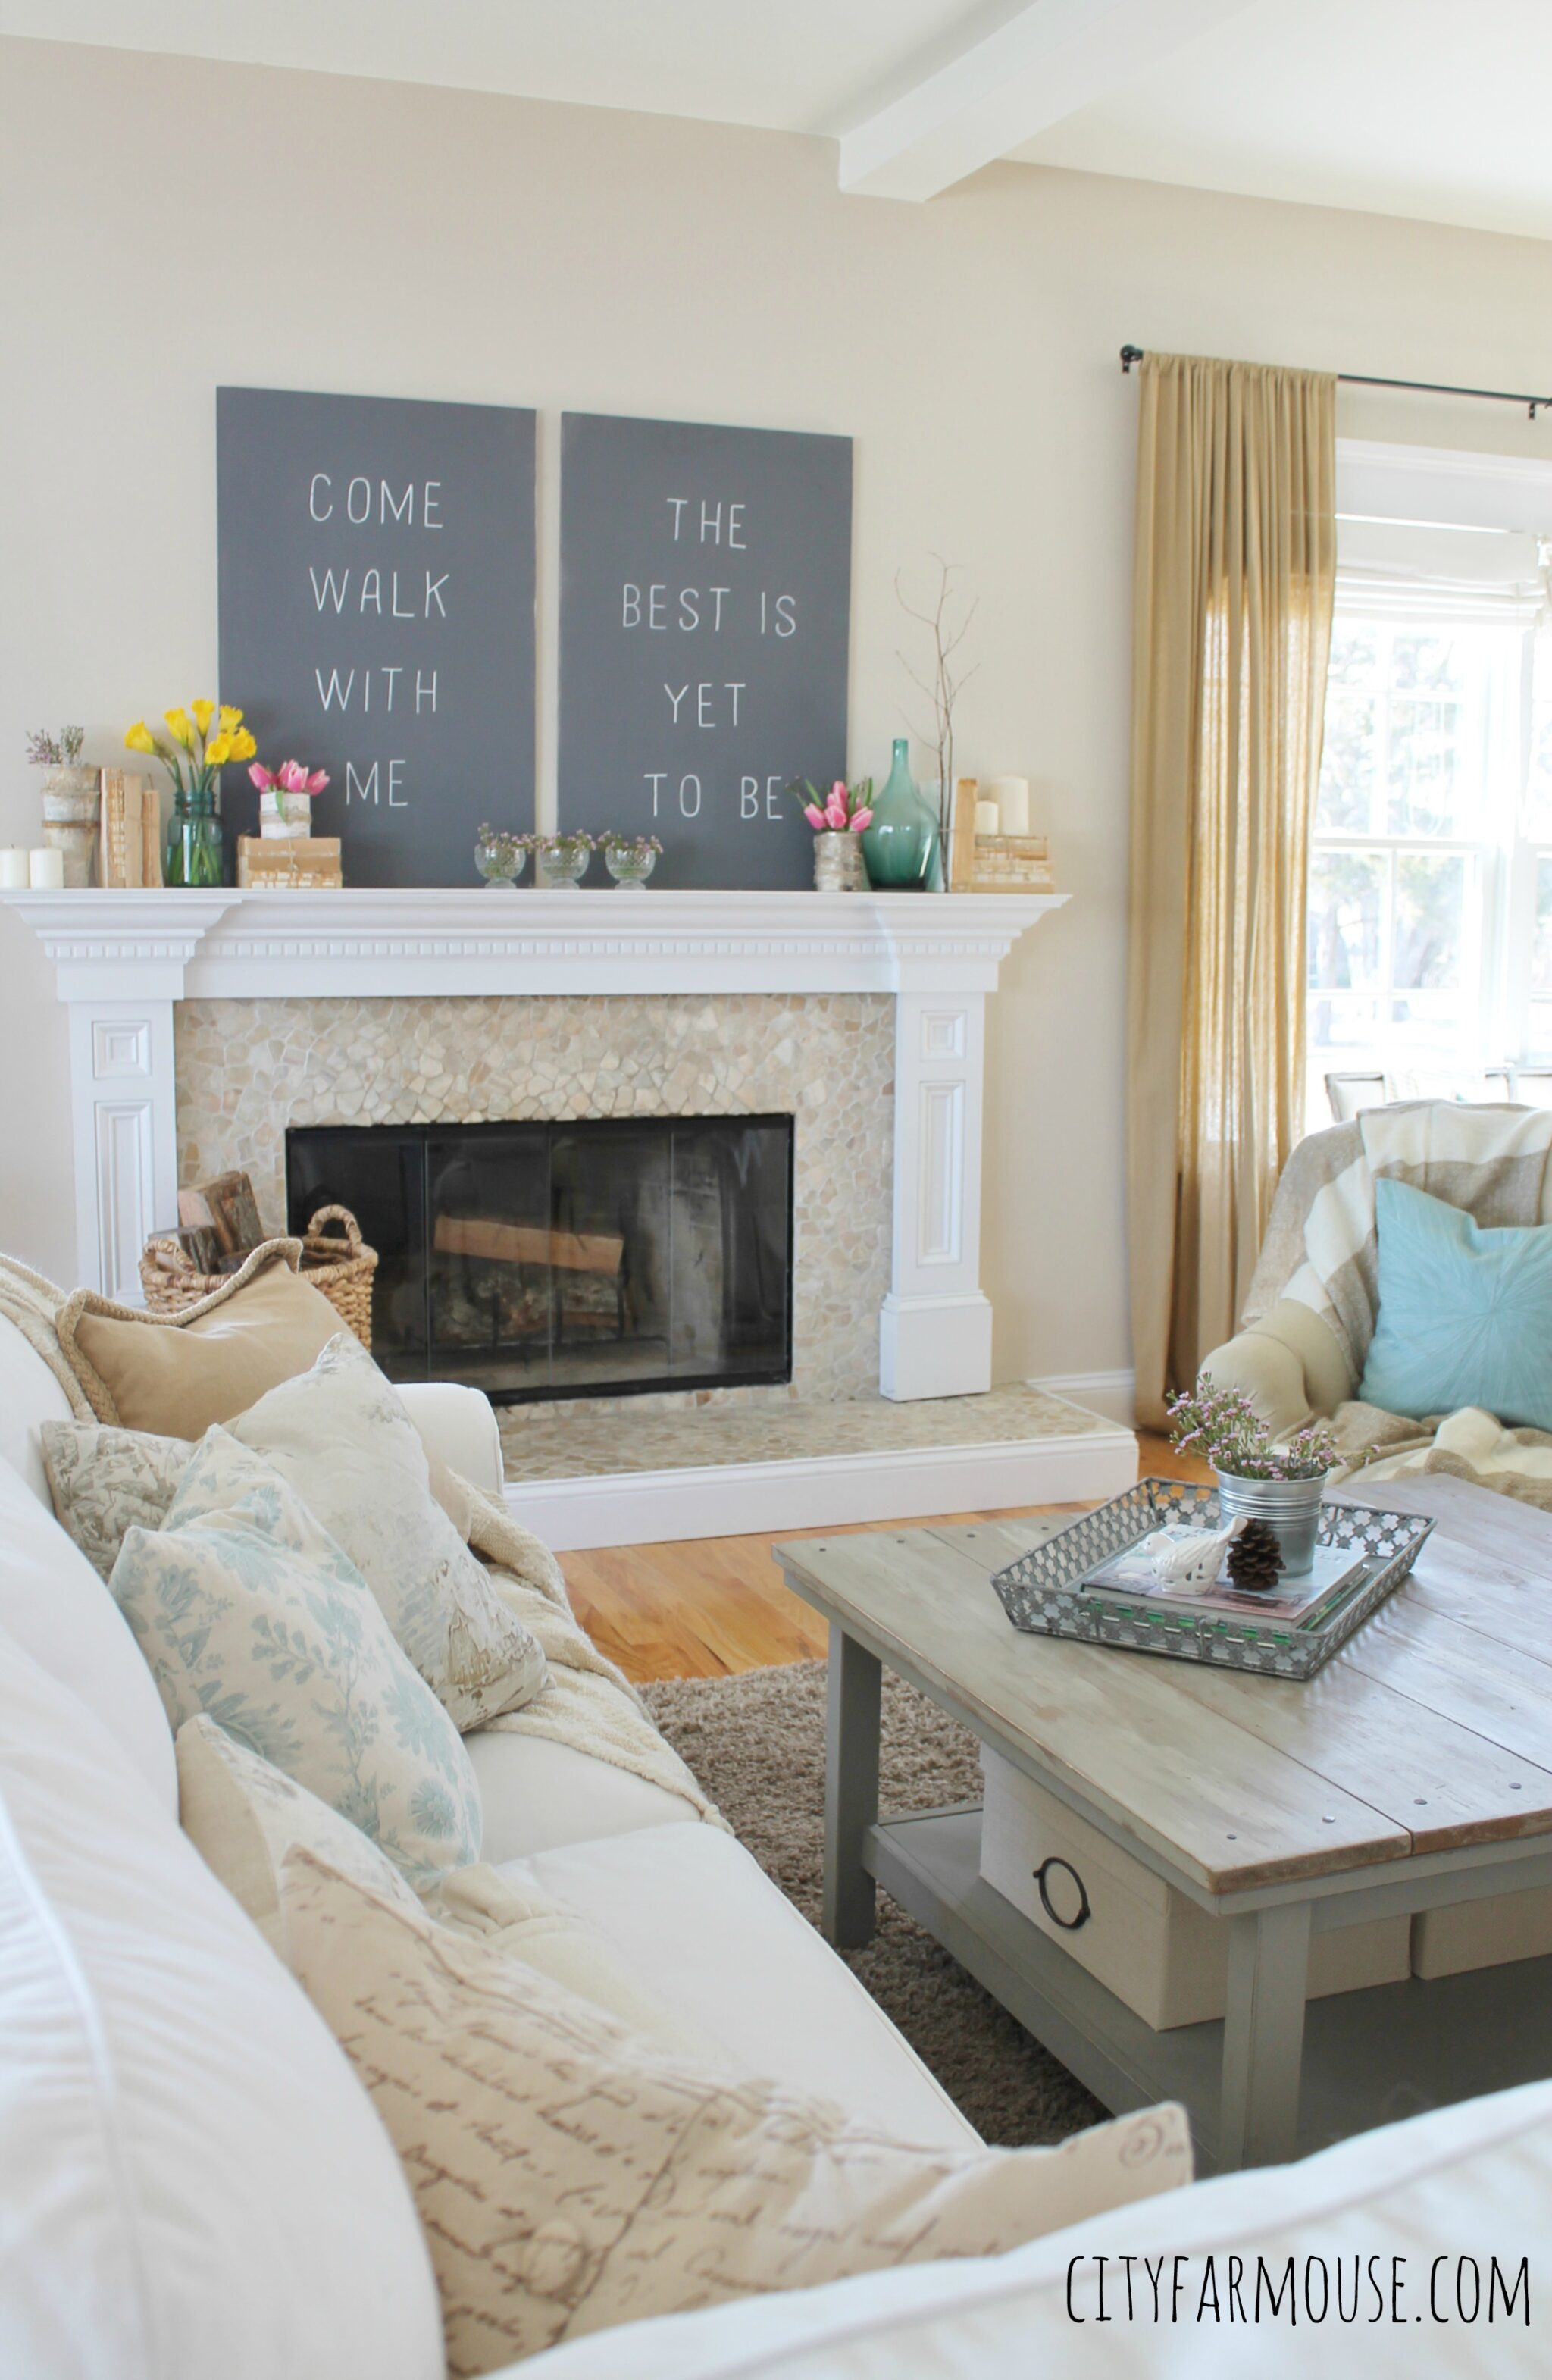 Home Design Ideas Youtube: Seasons Of Home- Easy Decorating Ideas For Spring